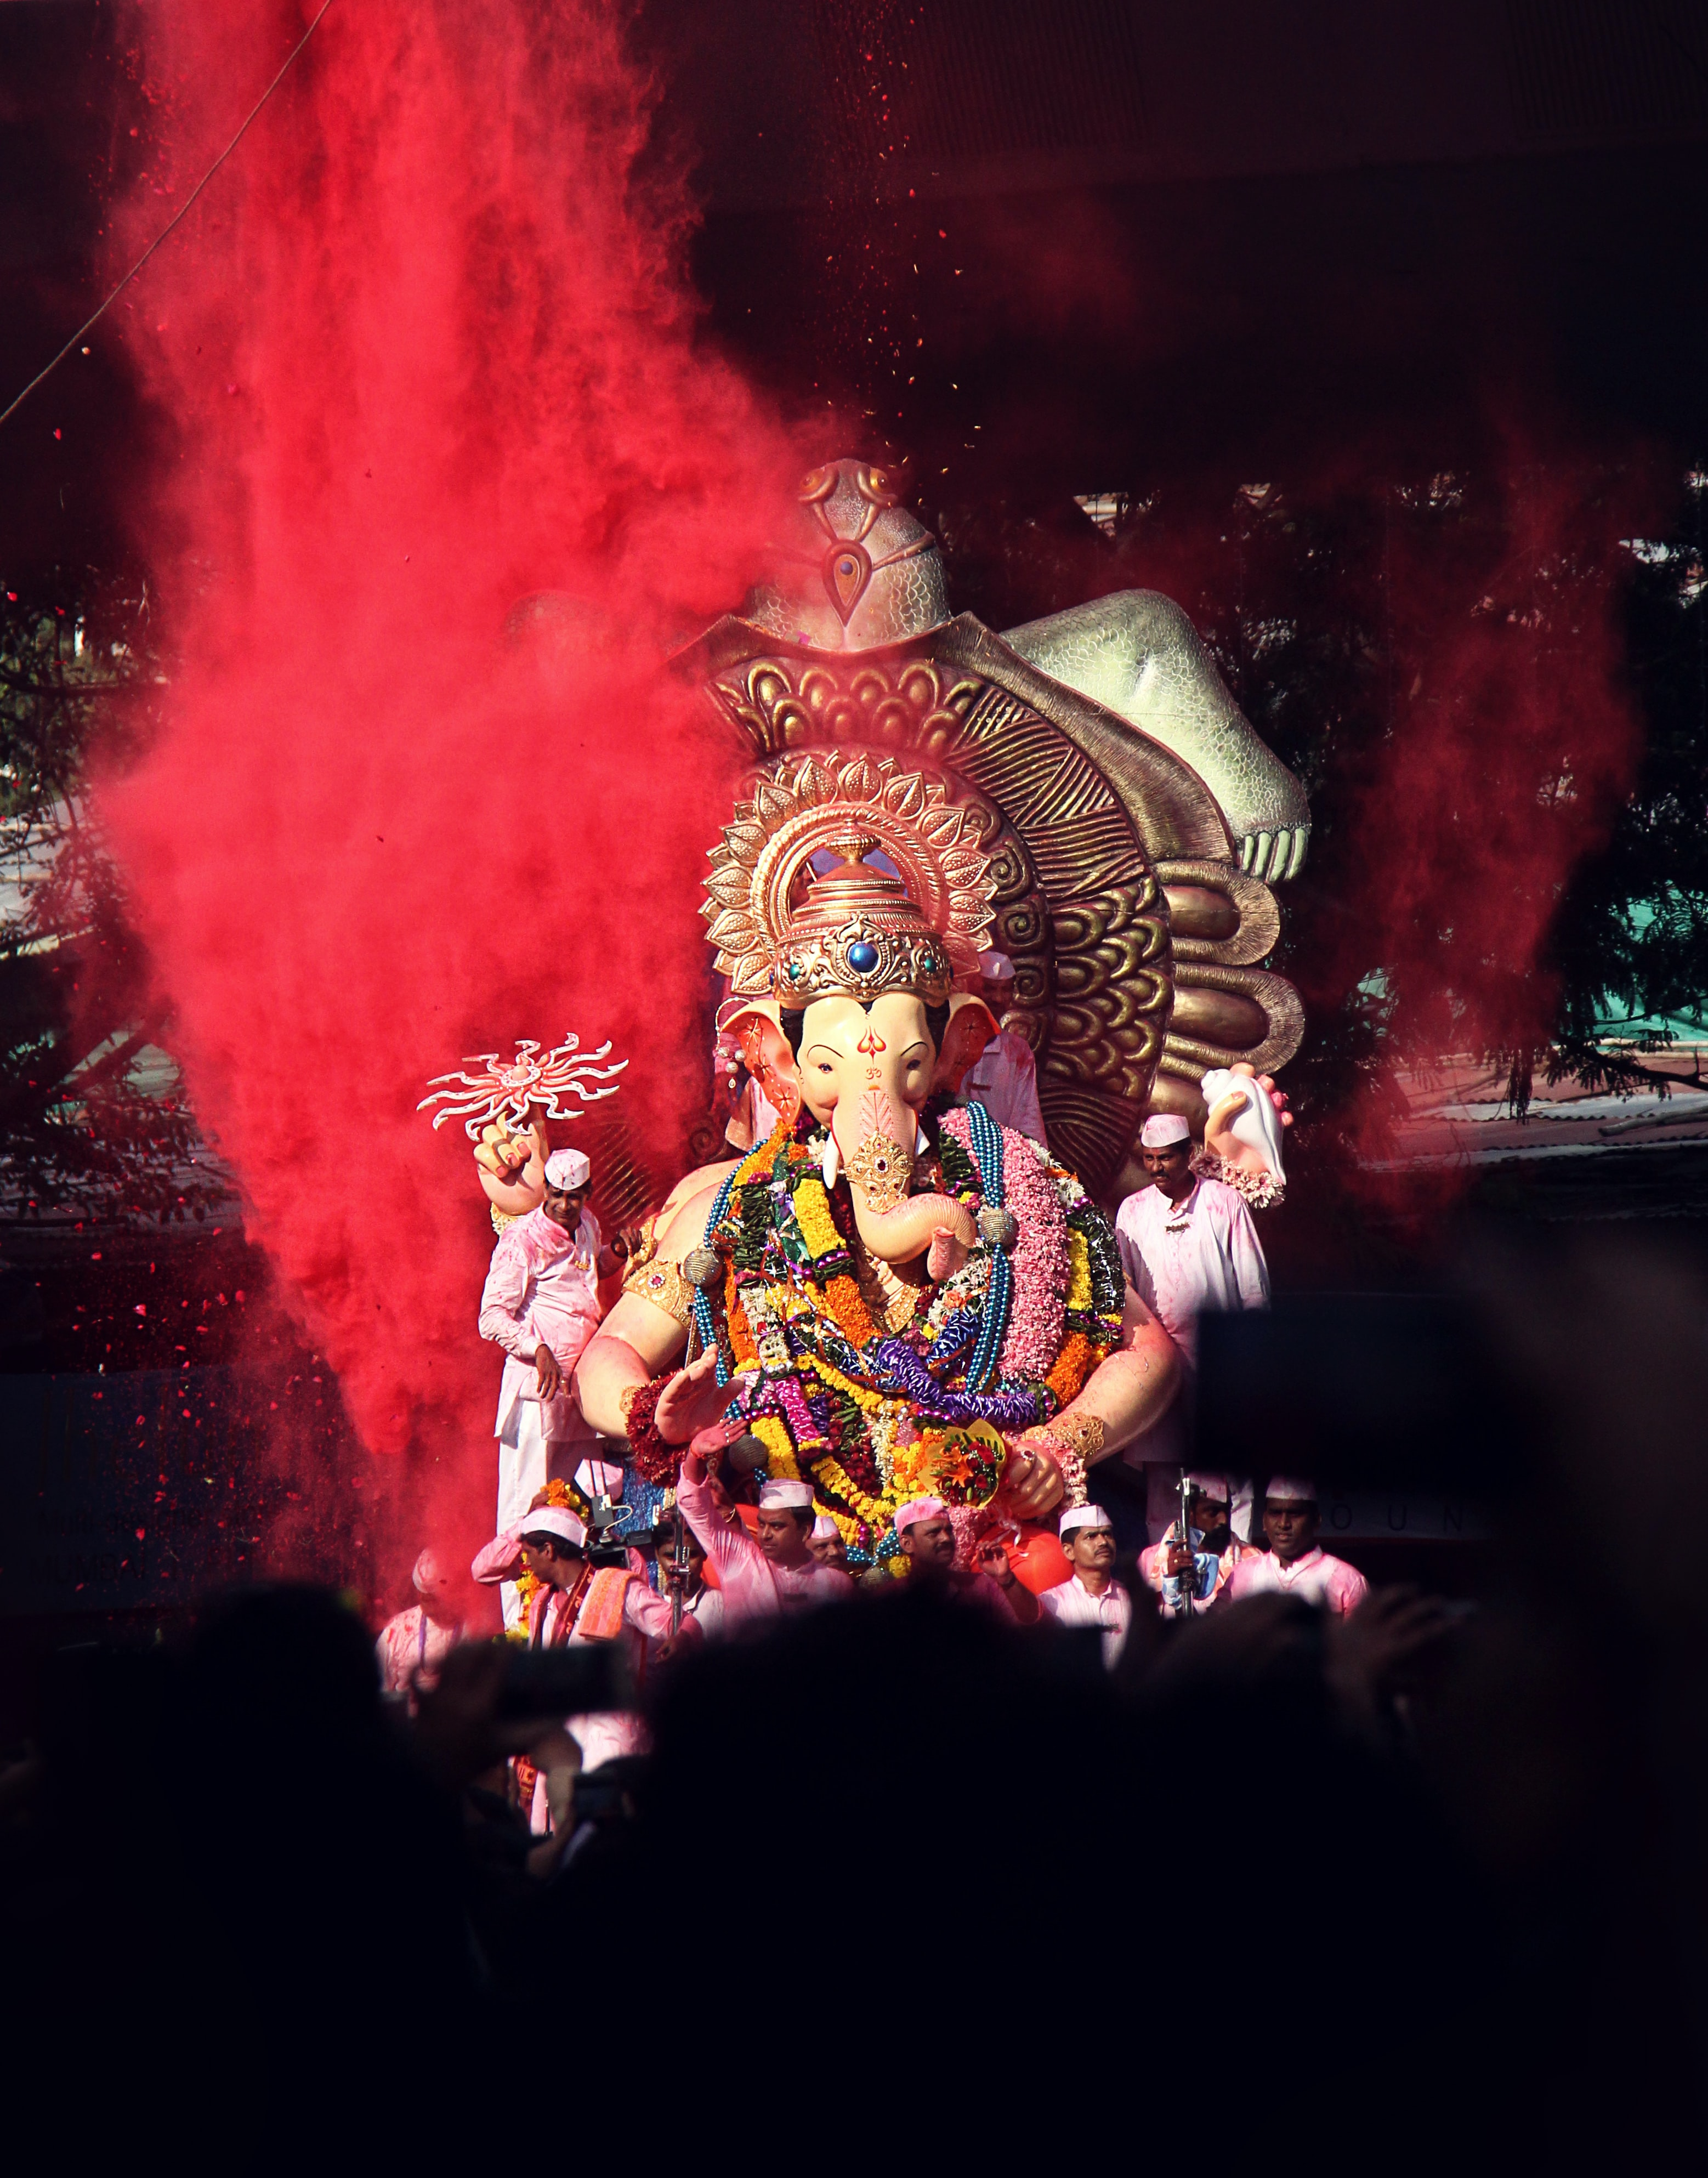 Ganesha statue surrounded by people